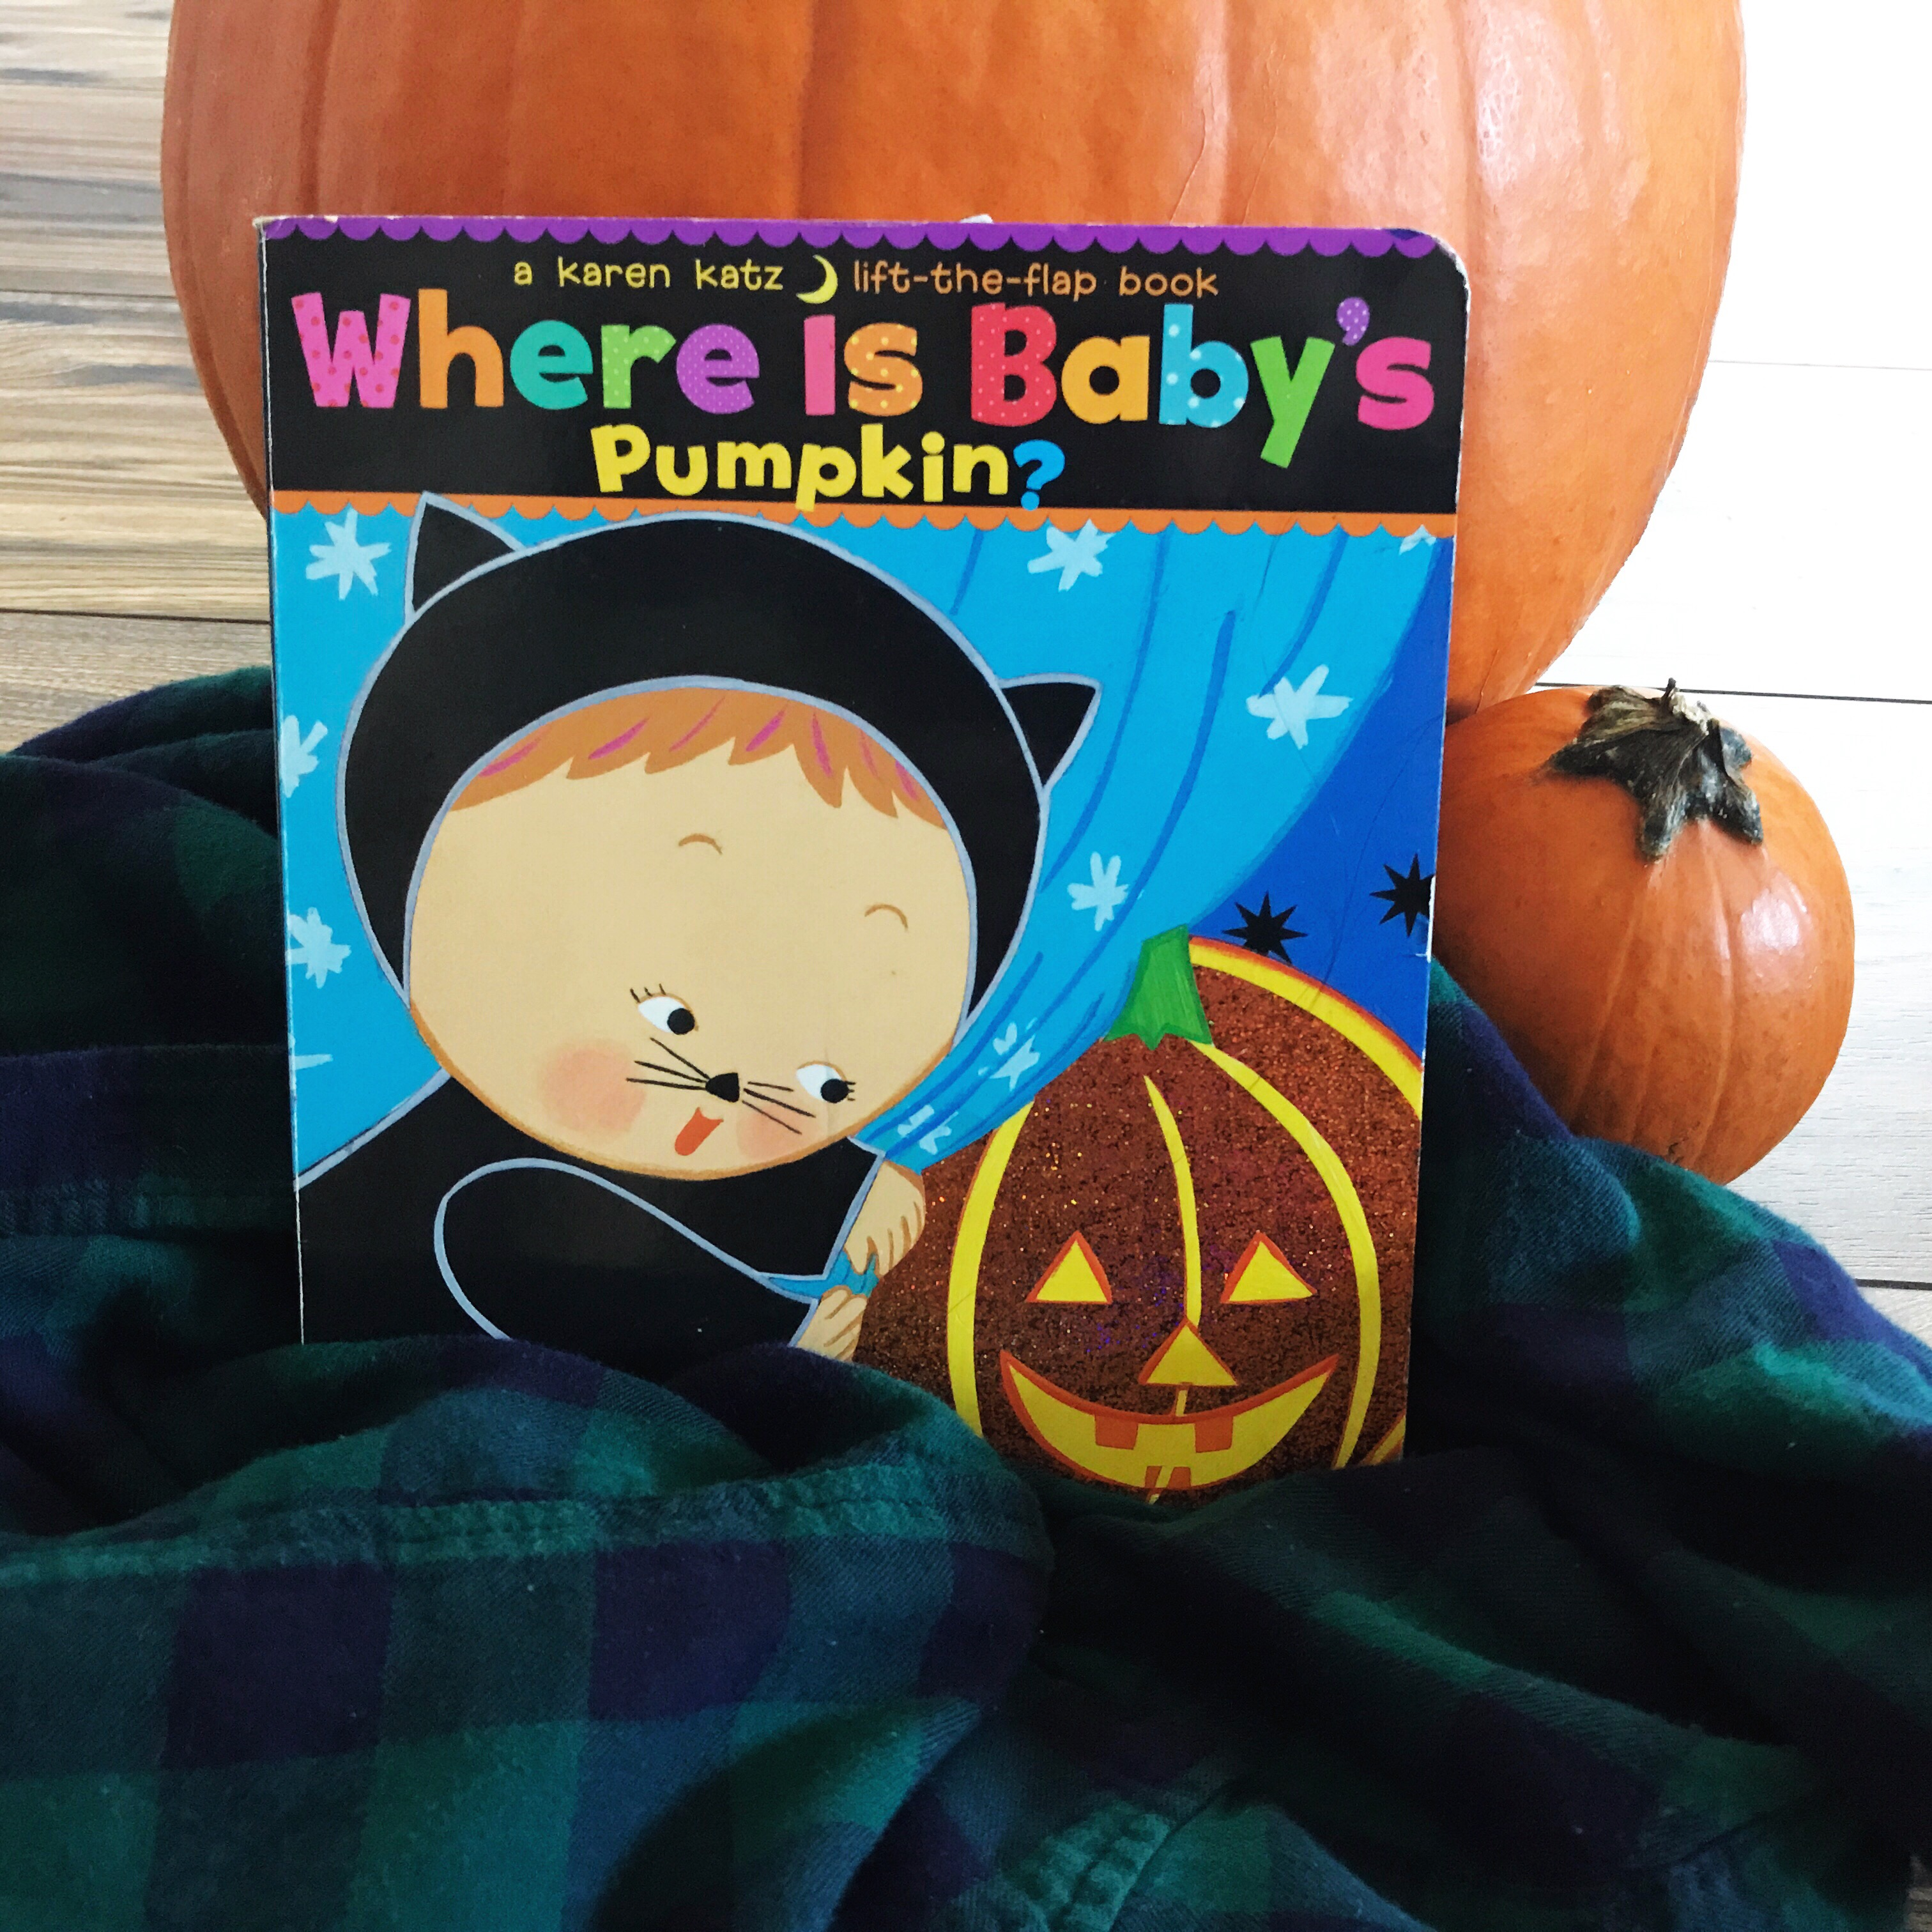 Where is Baby's Pumpkin? by Karen Katz | Parenting with Literature During Halloween